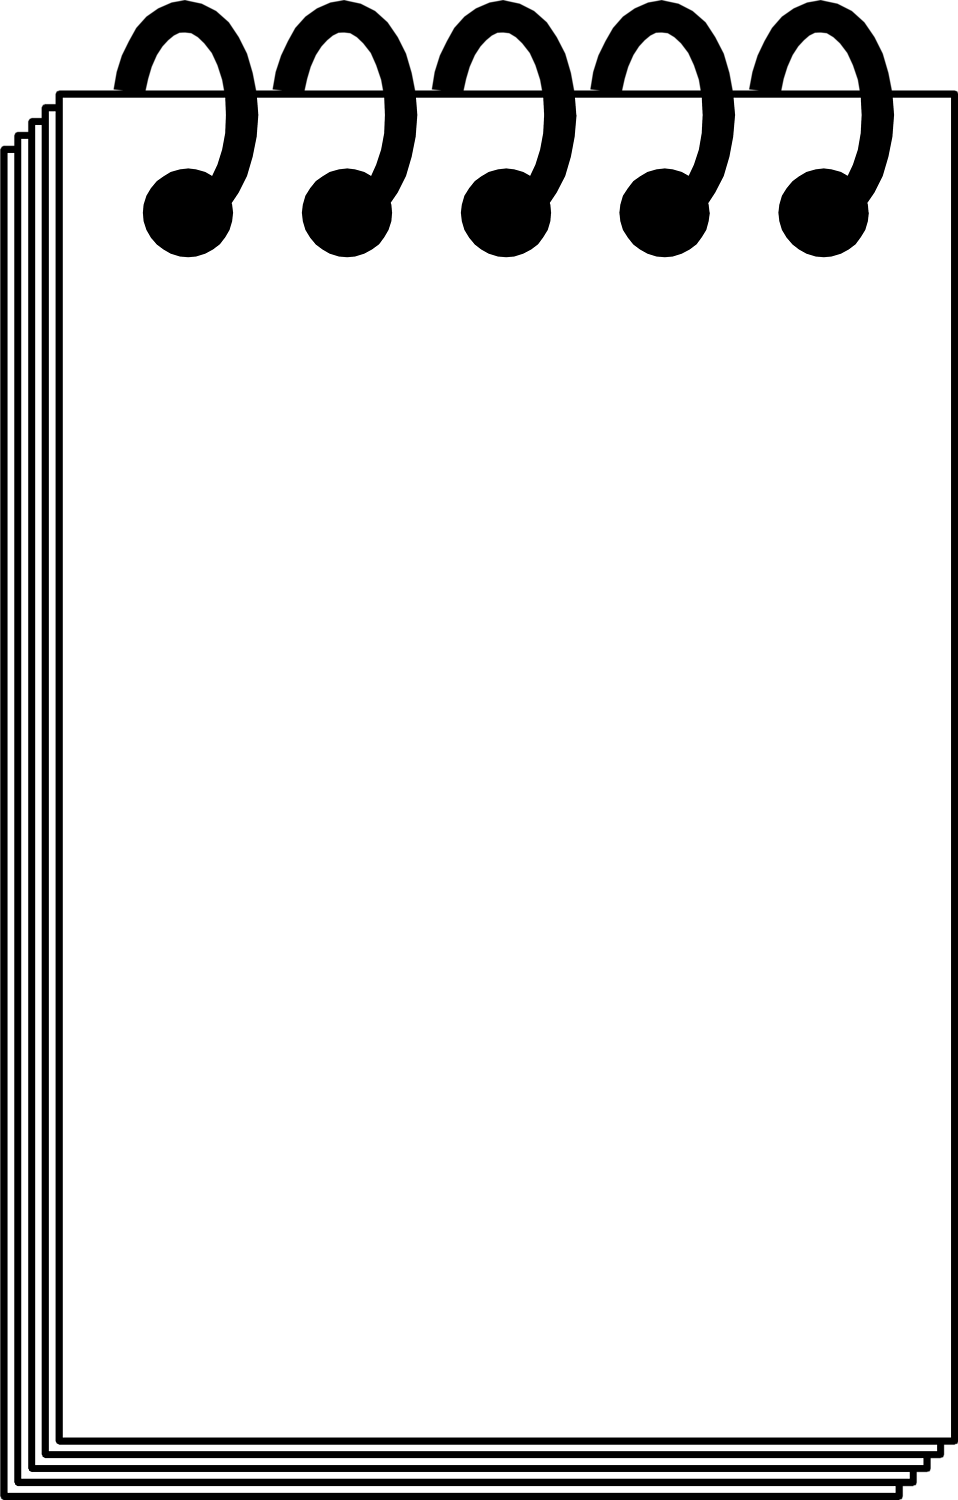 Illustration of a blank note pad.